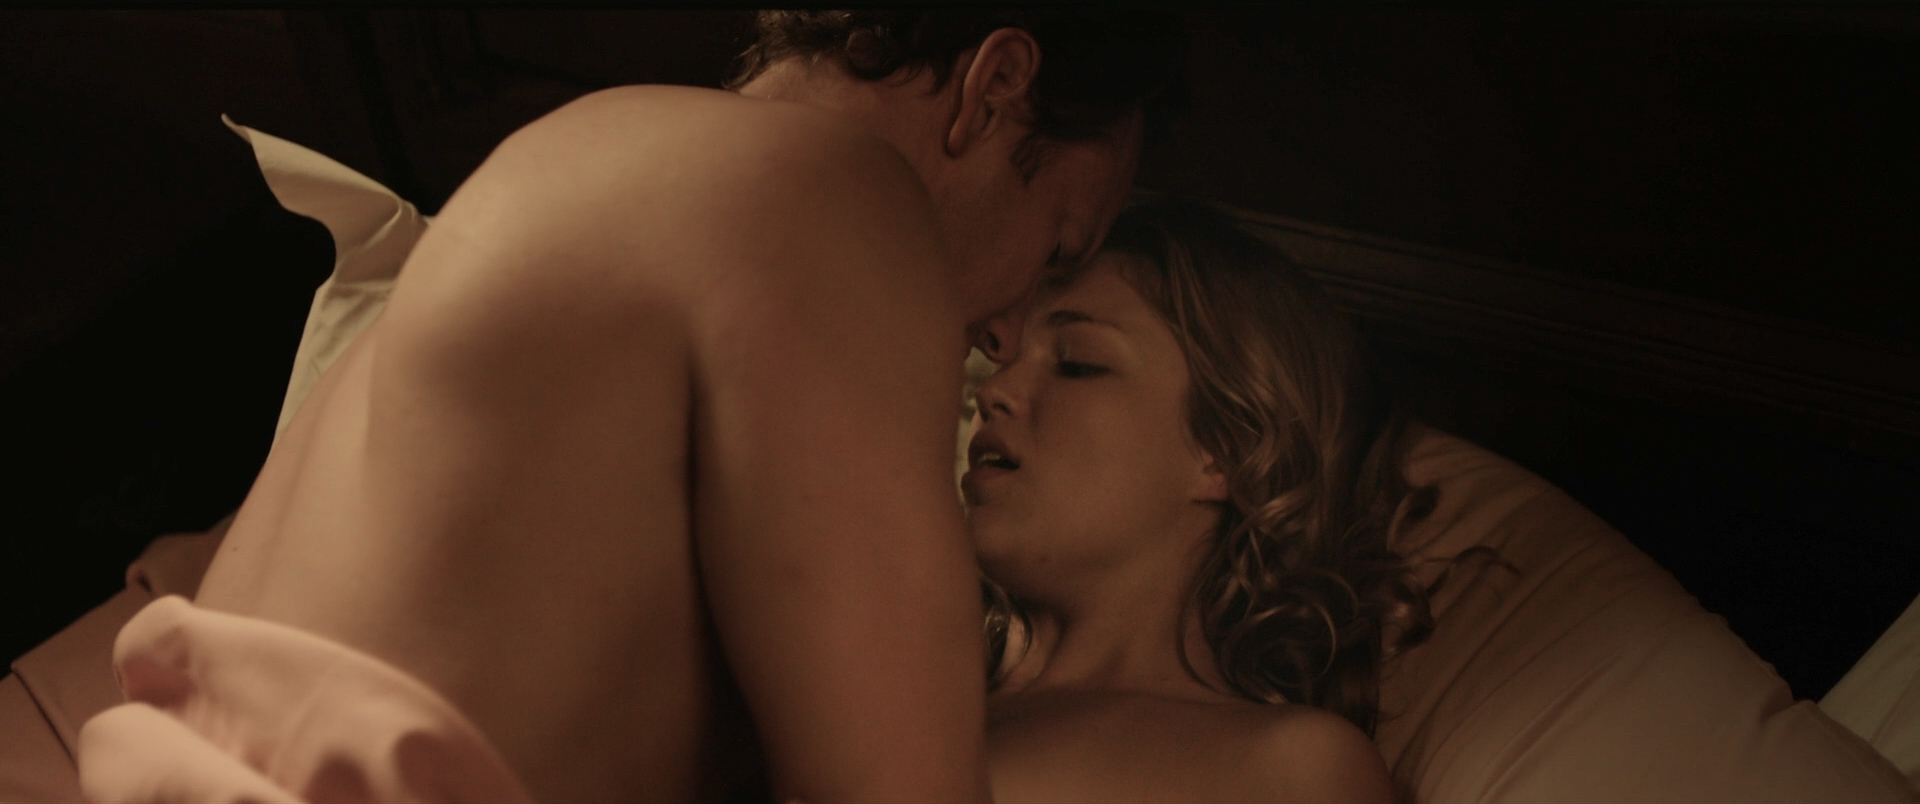 Lili Simmons nude and sex riding a dude - Bone Tomahawk (2015) HD 1080p BluRay (7)